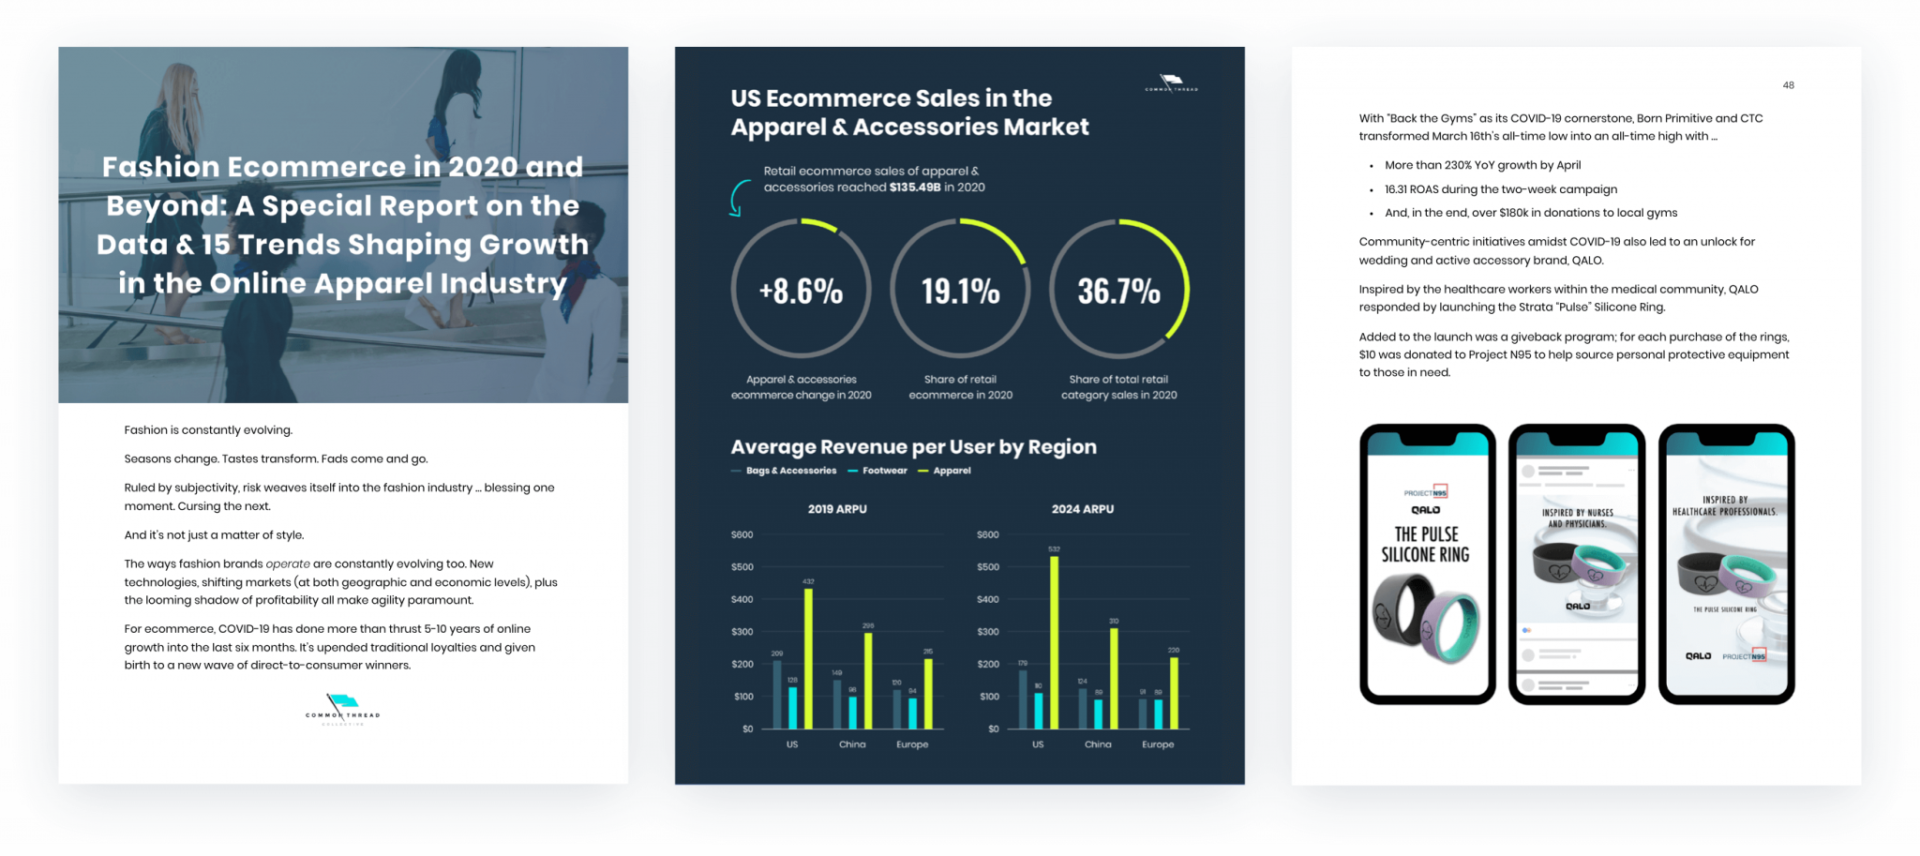 Fashion Ecommerce in 2020 and Beyond: A Special Report on the Data & 15 Trends Shaping Growth in the Online Apparel Industry